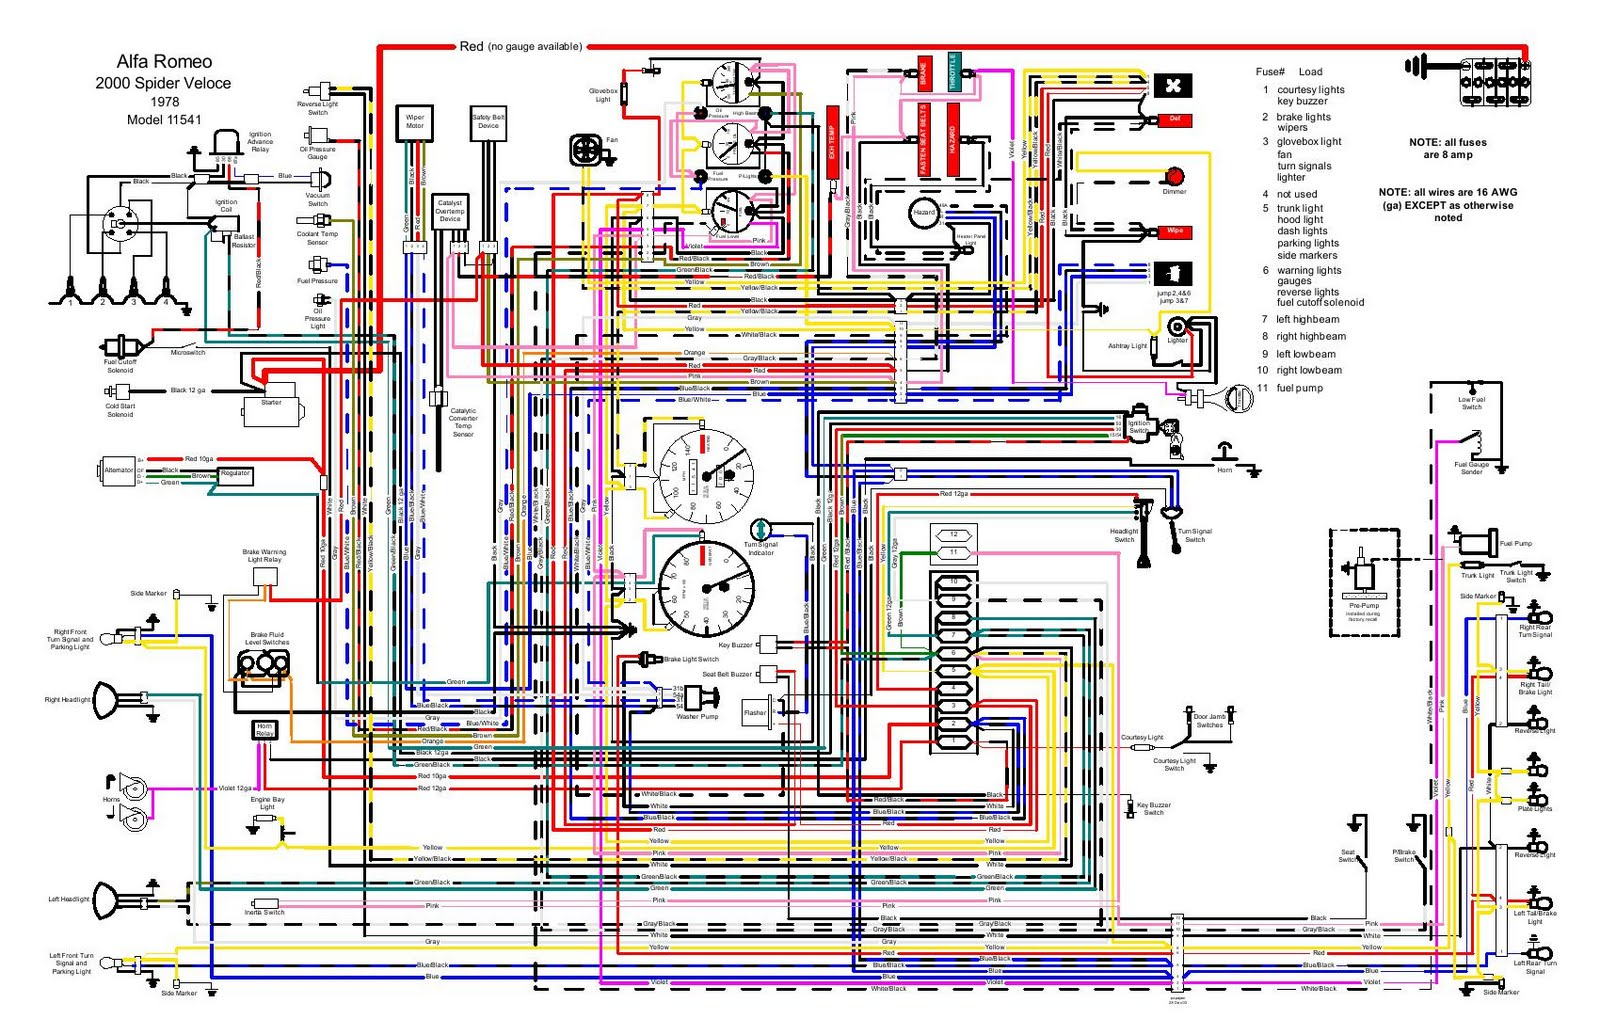 wiring diagram for 1978 alfa romeo spider CHaEWjz wiring diagrams cars readingrat net wiring schematics for cars at nearapp.co